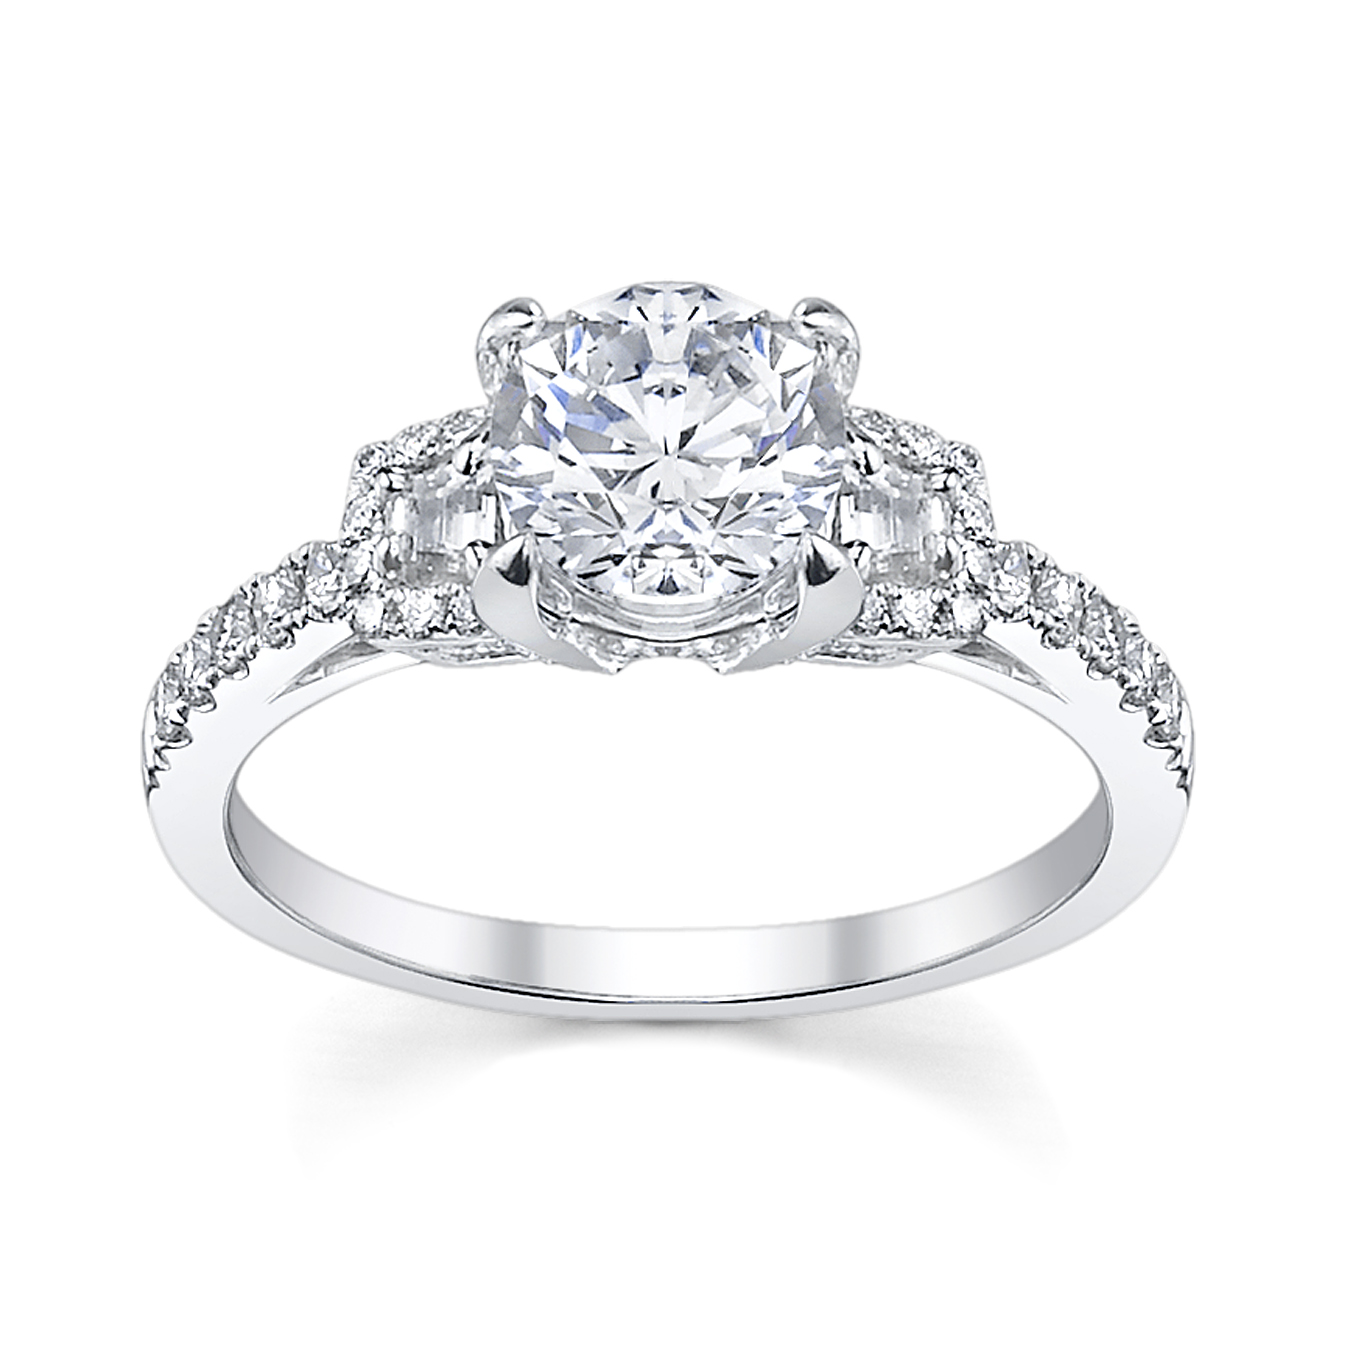 solitaire create tiffany ring points or rings classy engagement oval account an style solitare cut earn login to